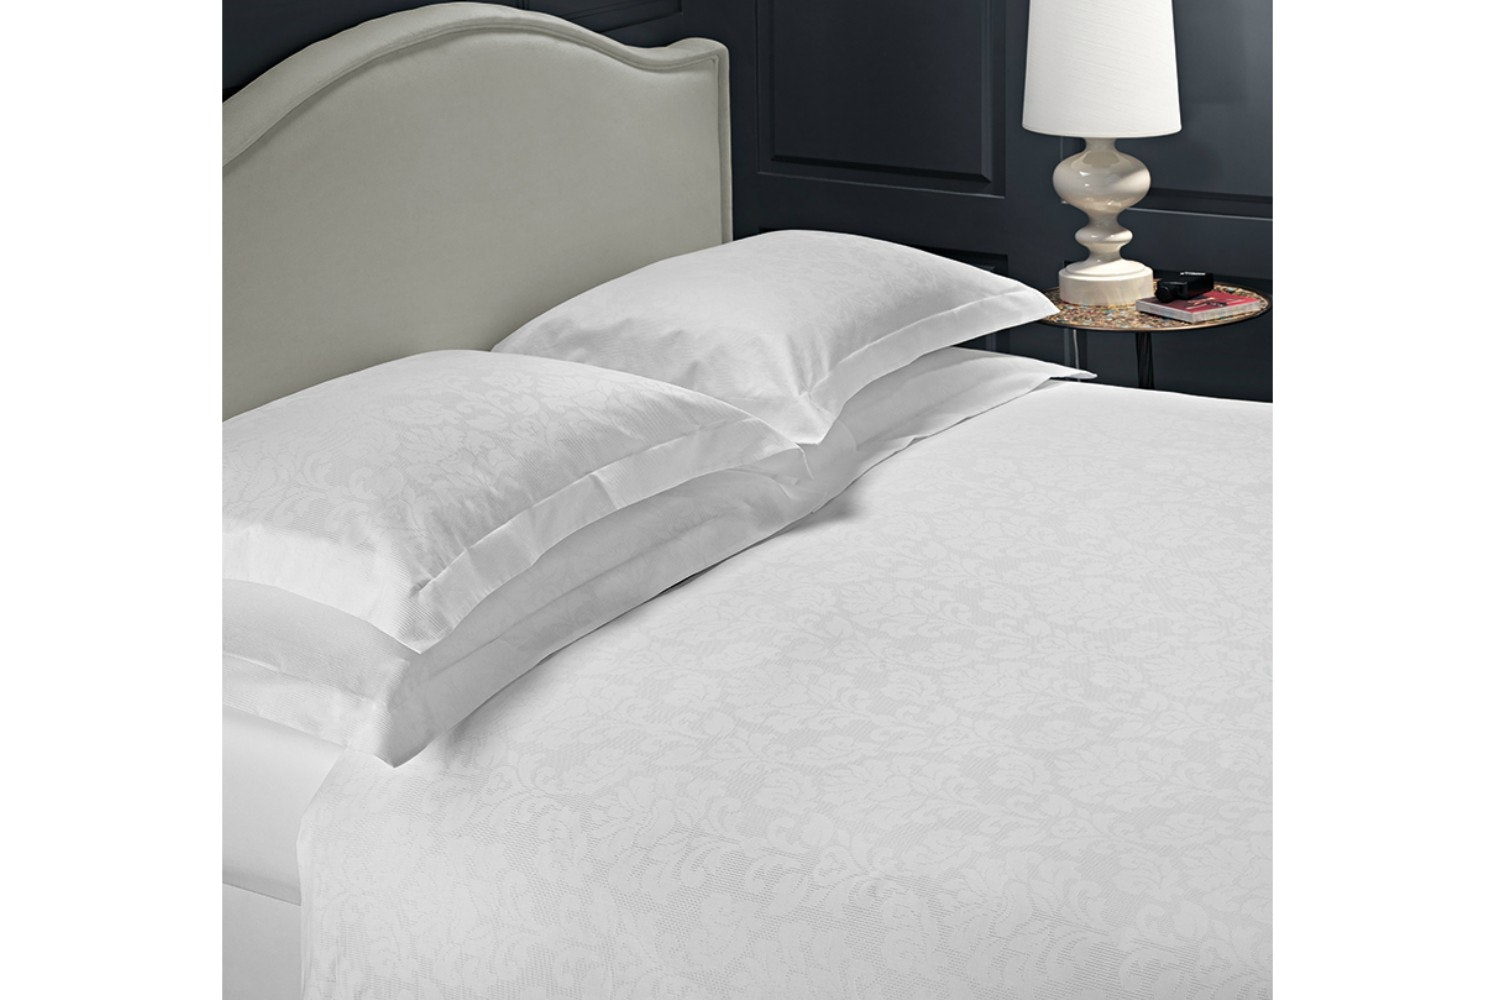 The Linen Room Athena Duvet Cover Set | King